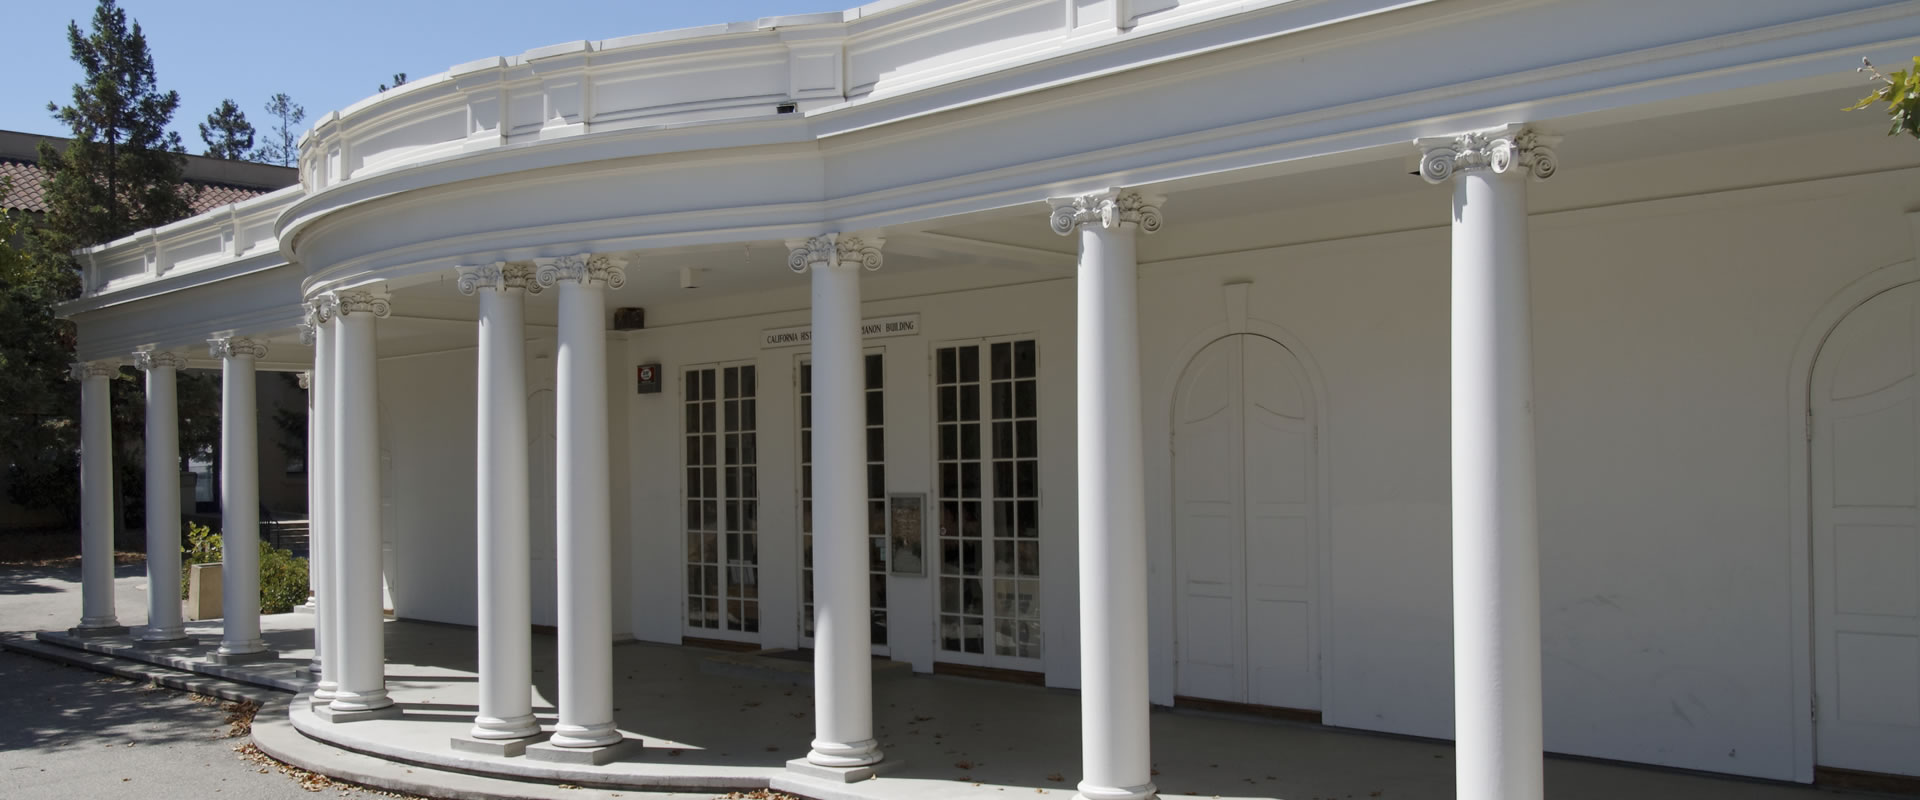 Le Petit Trianon - The California History Center